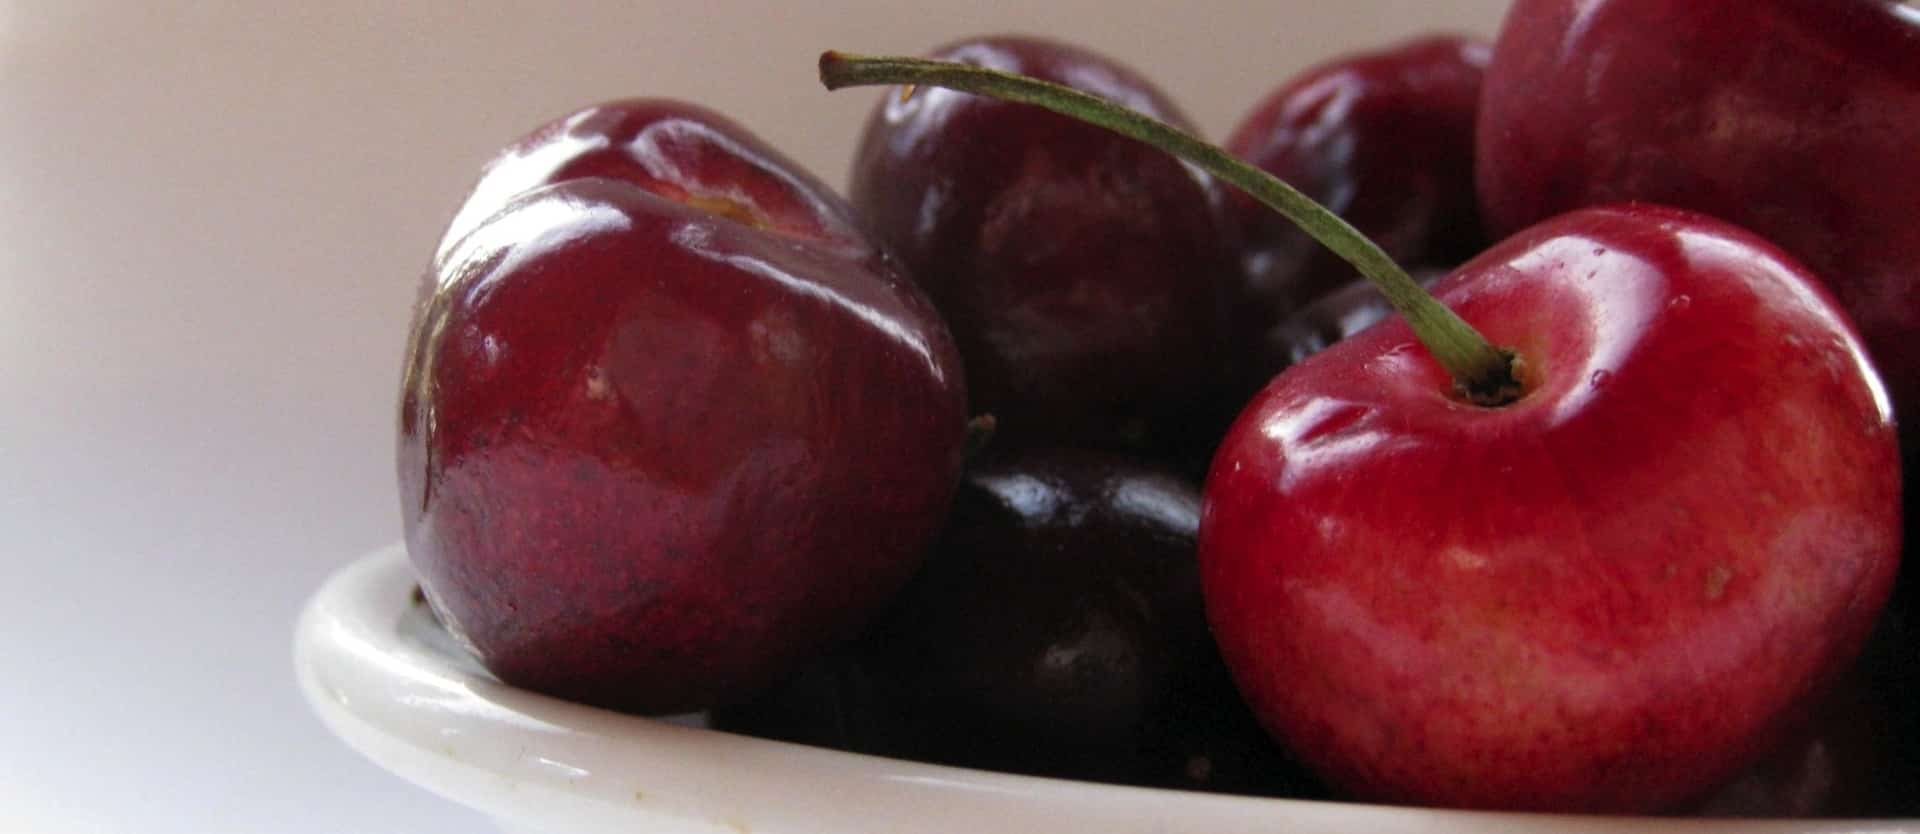 Bowl Of Cherries Images